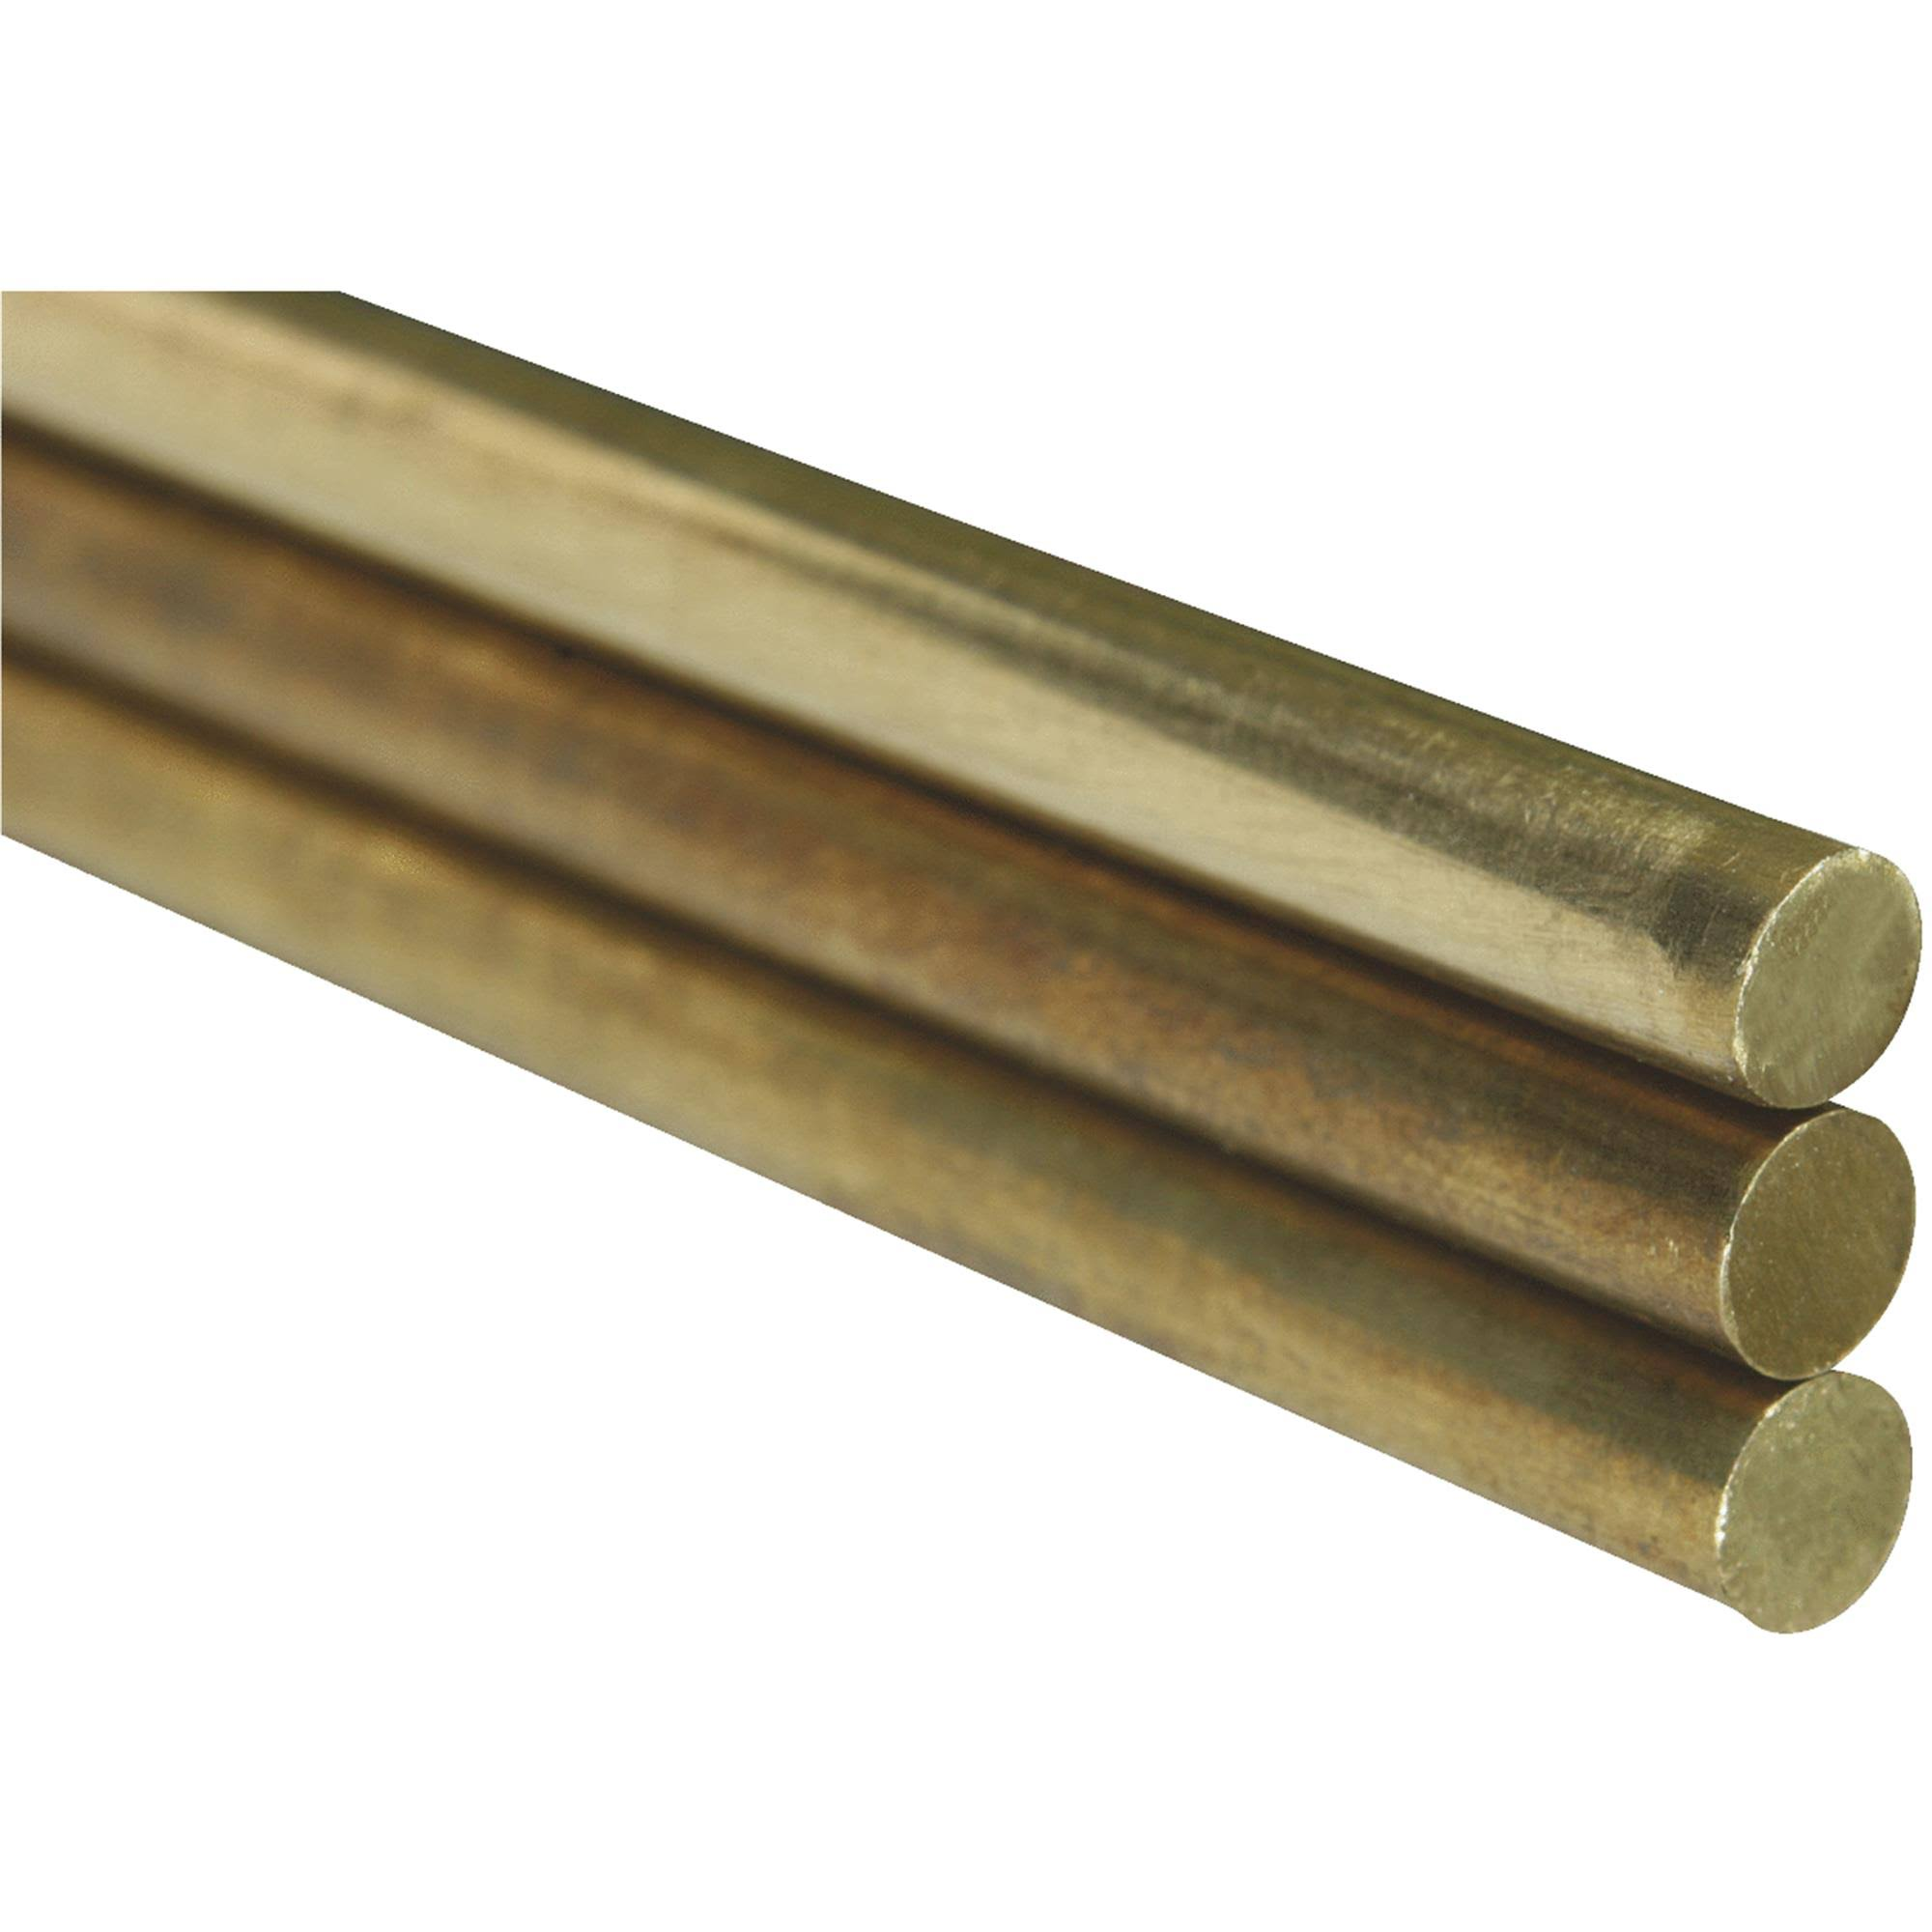 "K & S Solid Brass Rod, 1/32"" x 12"" - 5 count"